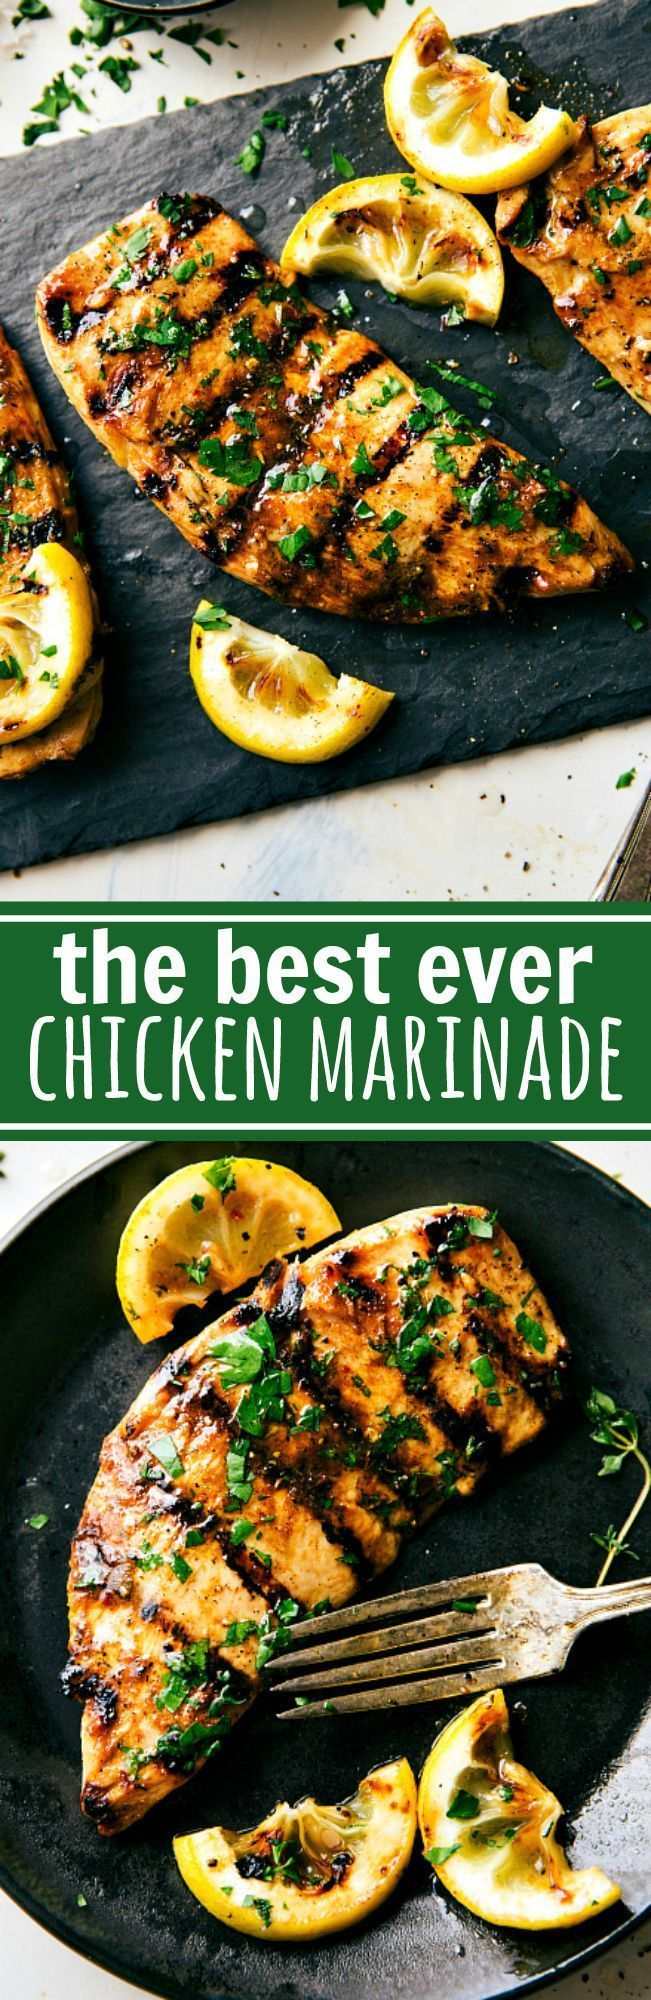 The absolute best chicken marinade recipe! Easy and delicious via chelseasmessyapro...